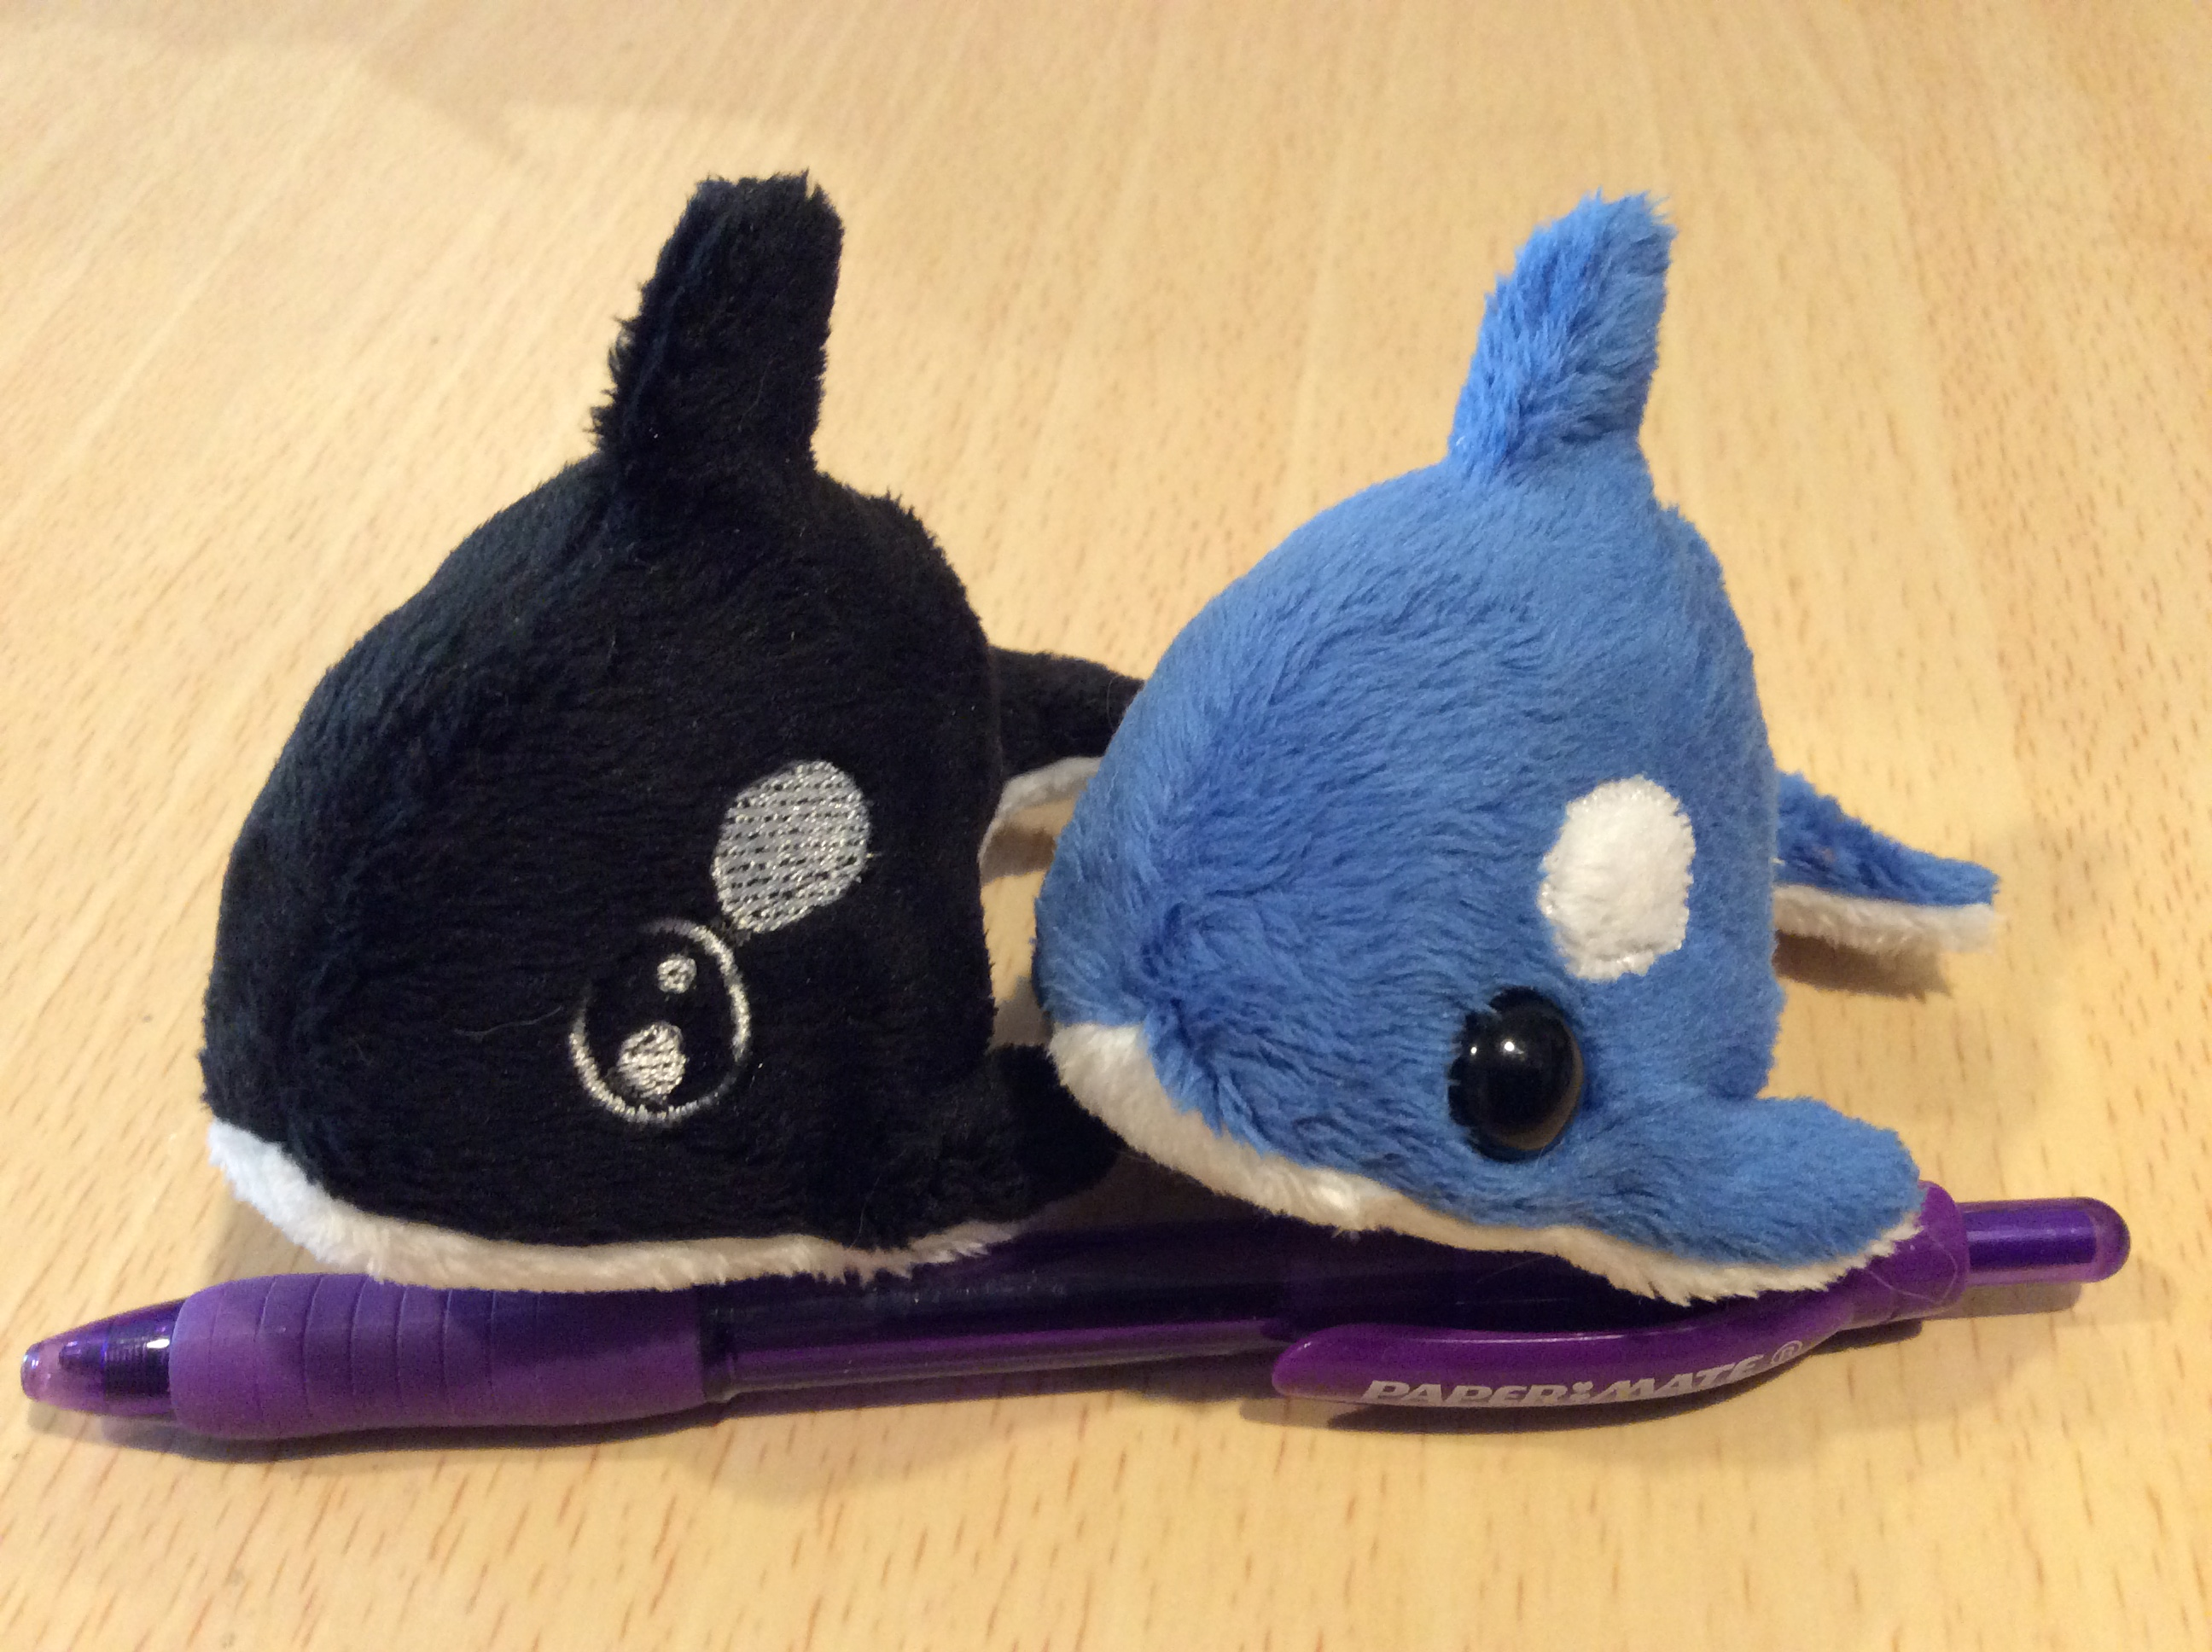 A pair of tiny plush killer whales, with a pen for scale.